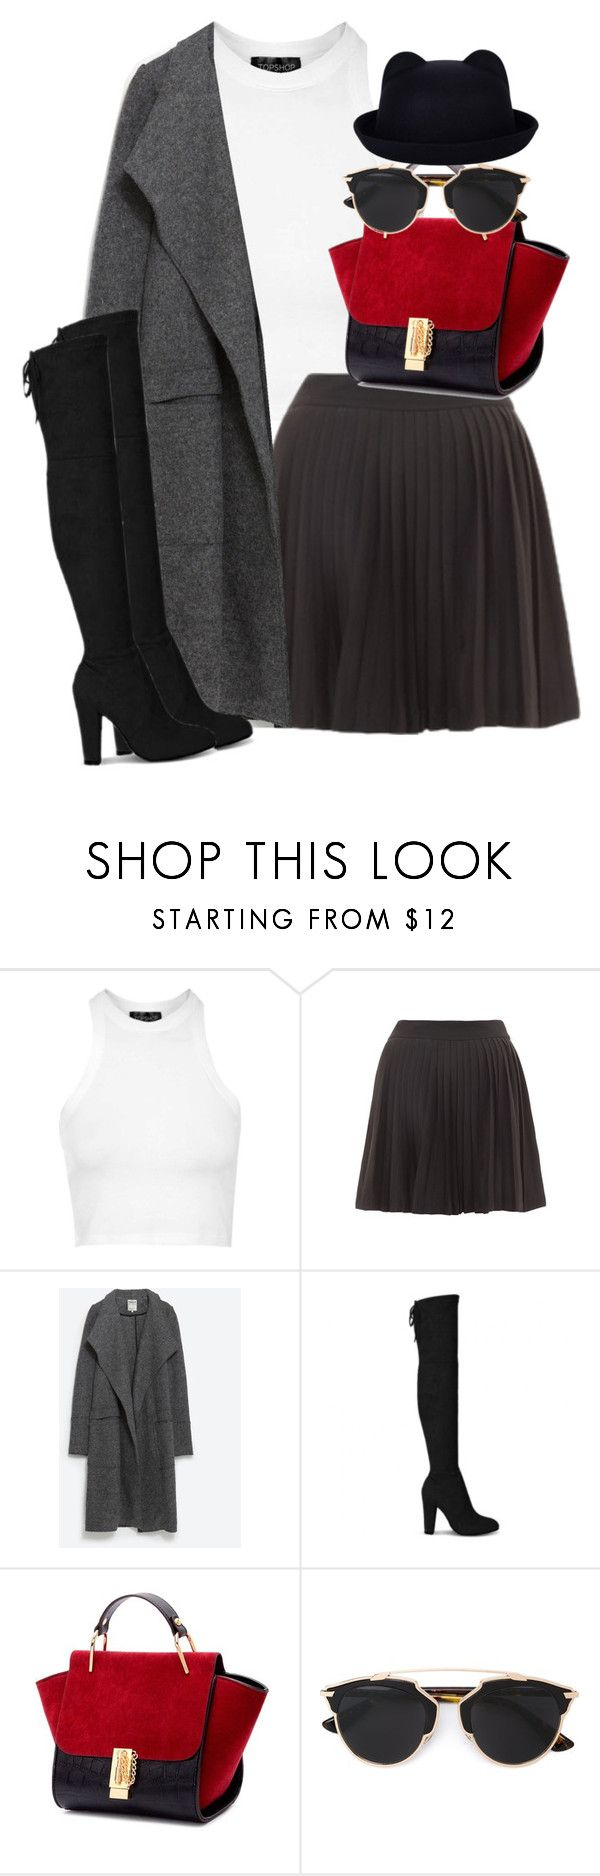 """Untitled #1776"" by itsmeischoice on Polyvore featuring Topshop, Zara, Christian Dior, women's clothing, women, female, woman, misses and juniors"